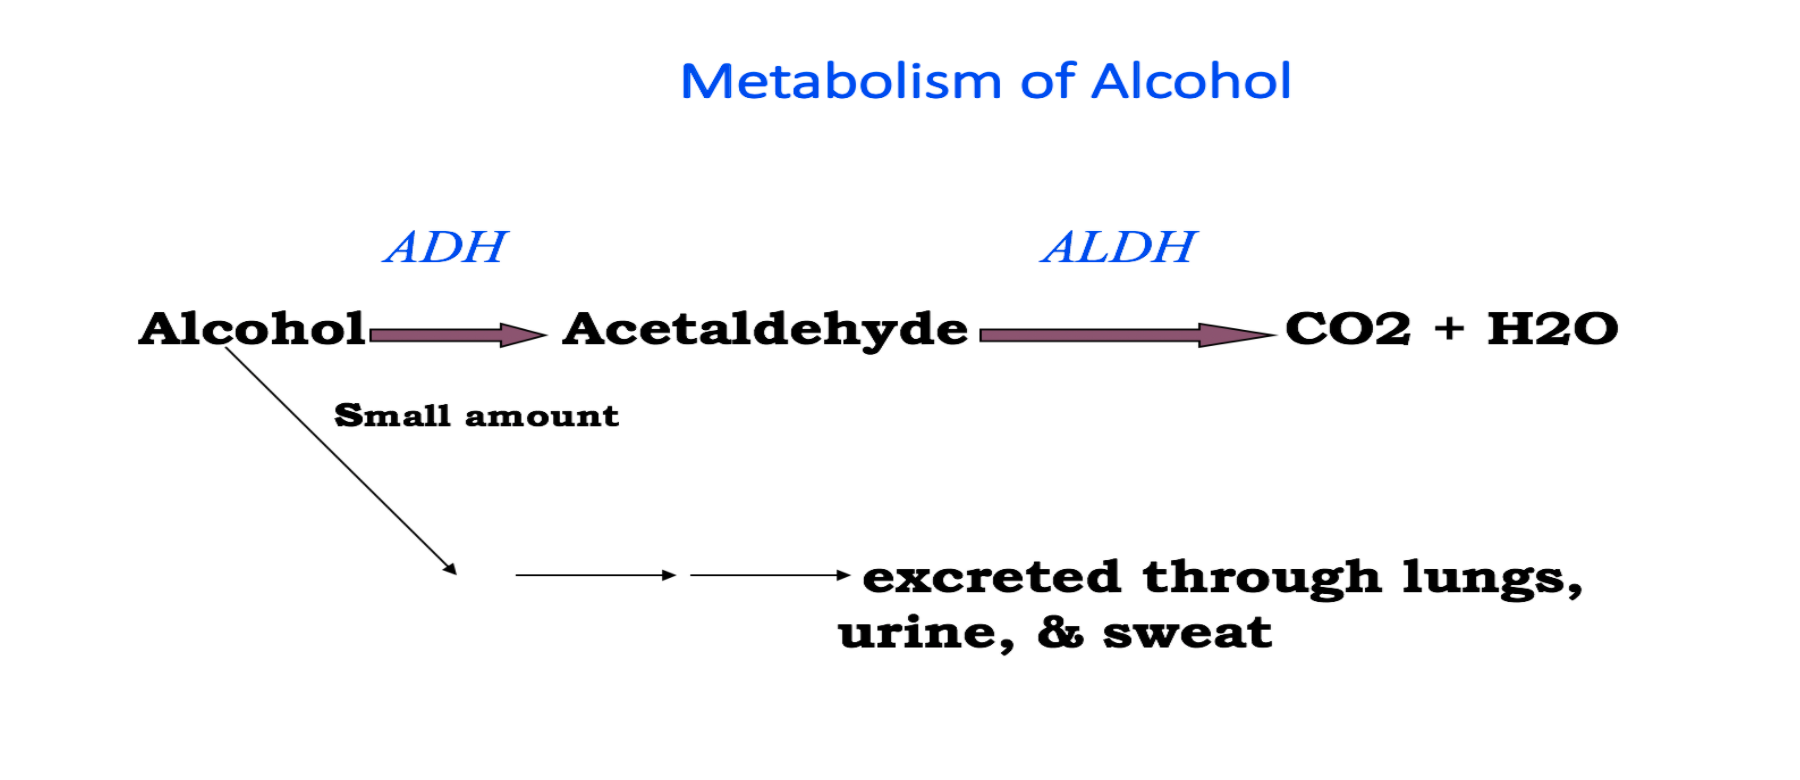 chemicals related to the metabolism of alcohol -- clerk does not understand to explain better